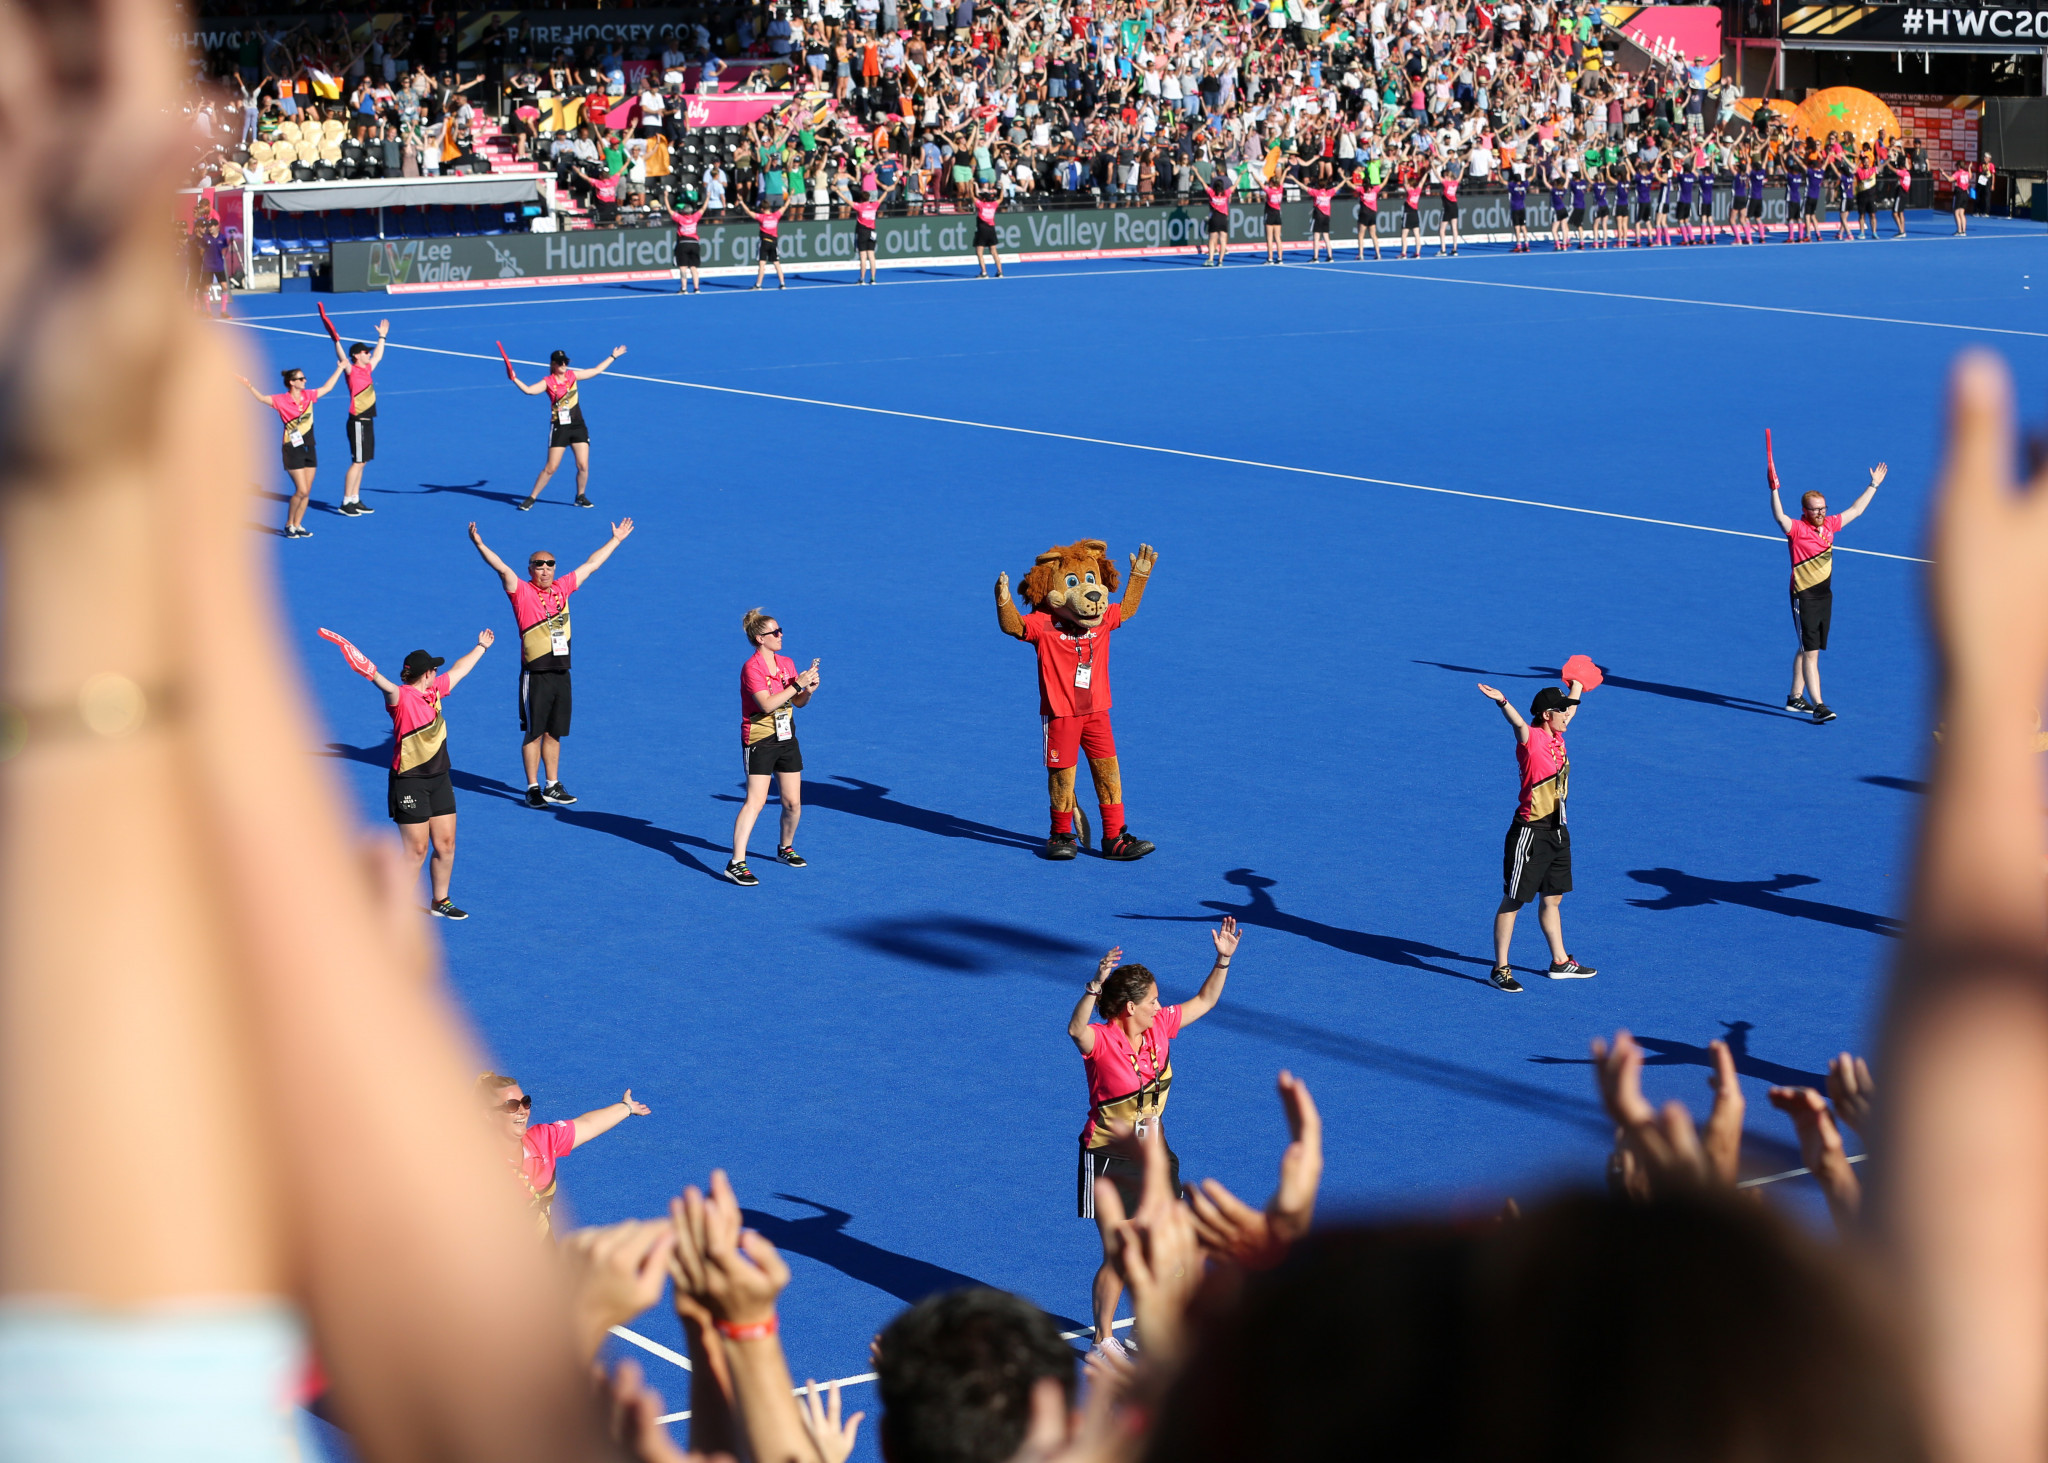 London hosted the 2018 Women's Hockey World Cup ©Getty Images